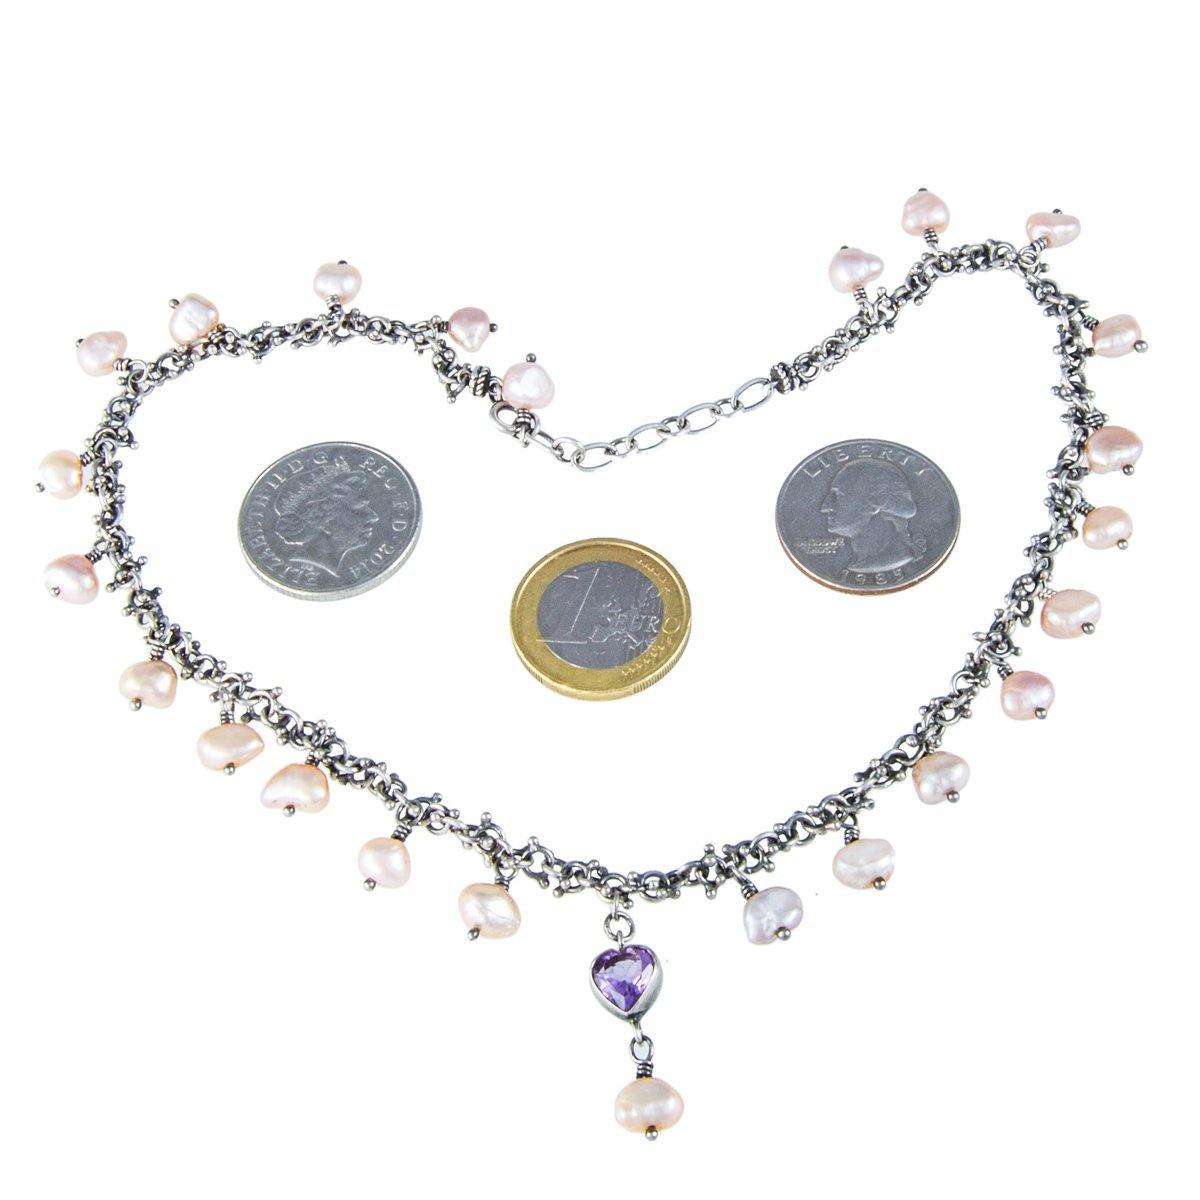 chain gifts off pendant purple heart from in collares women pendants silver for amethyst necklaces stone item rhinestone bijoux uloveido necklace colar color mujer fashion